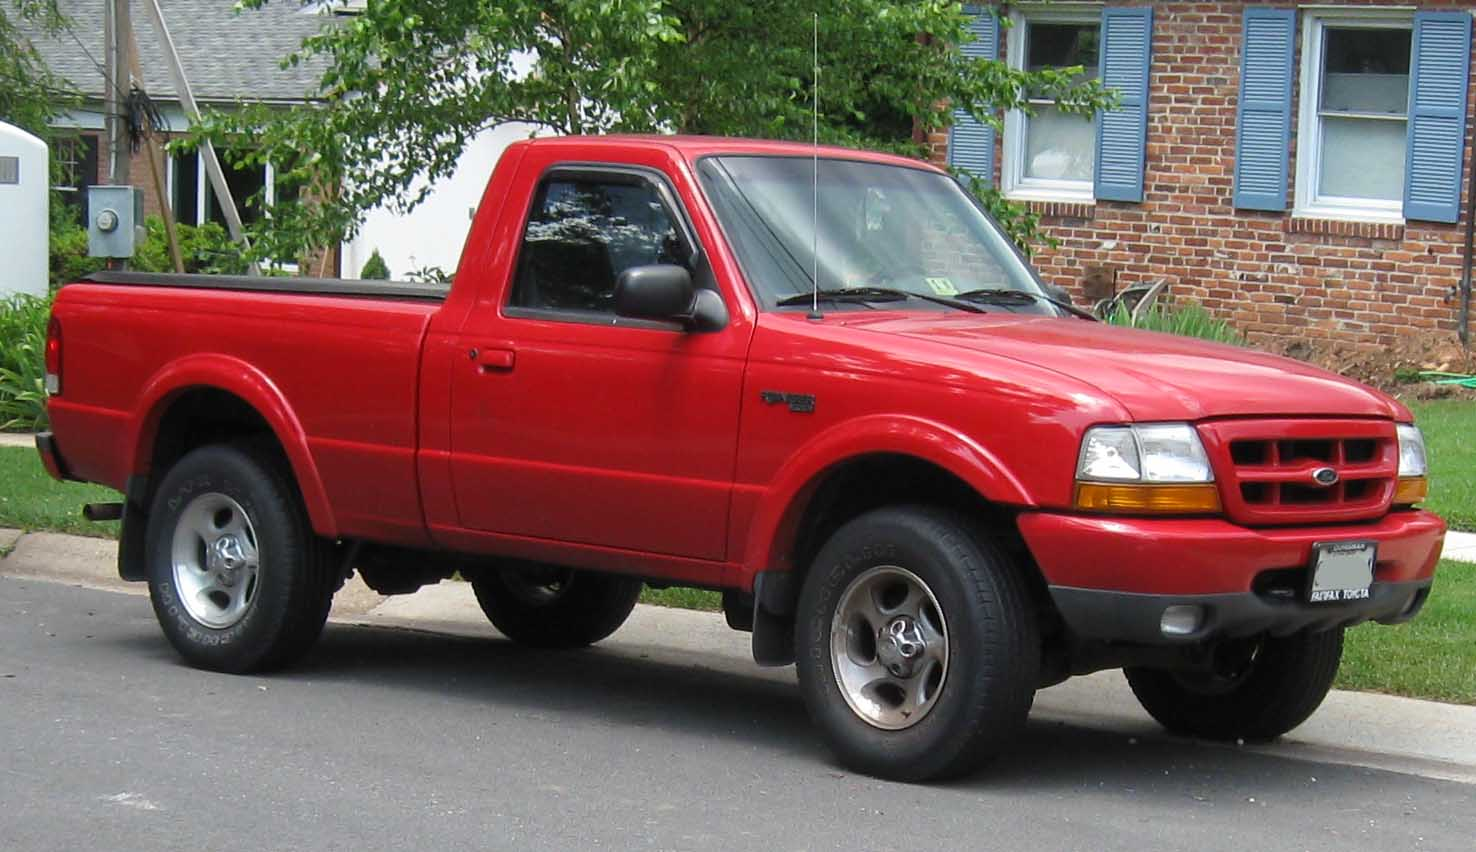 1998 Ford Ranger Photos Informations Articles 1967 Mustang Shelby On F100 Custom Cab Wiring Diagram 1